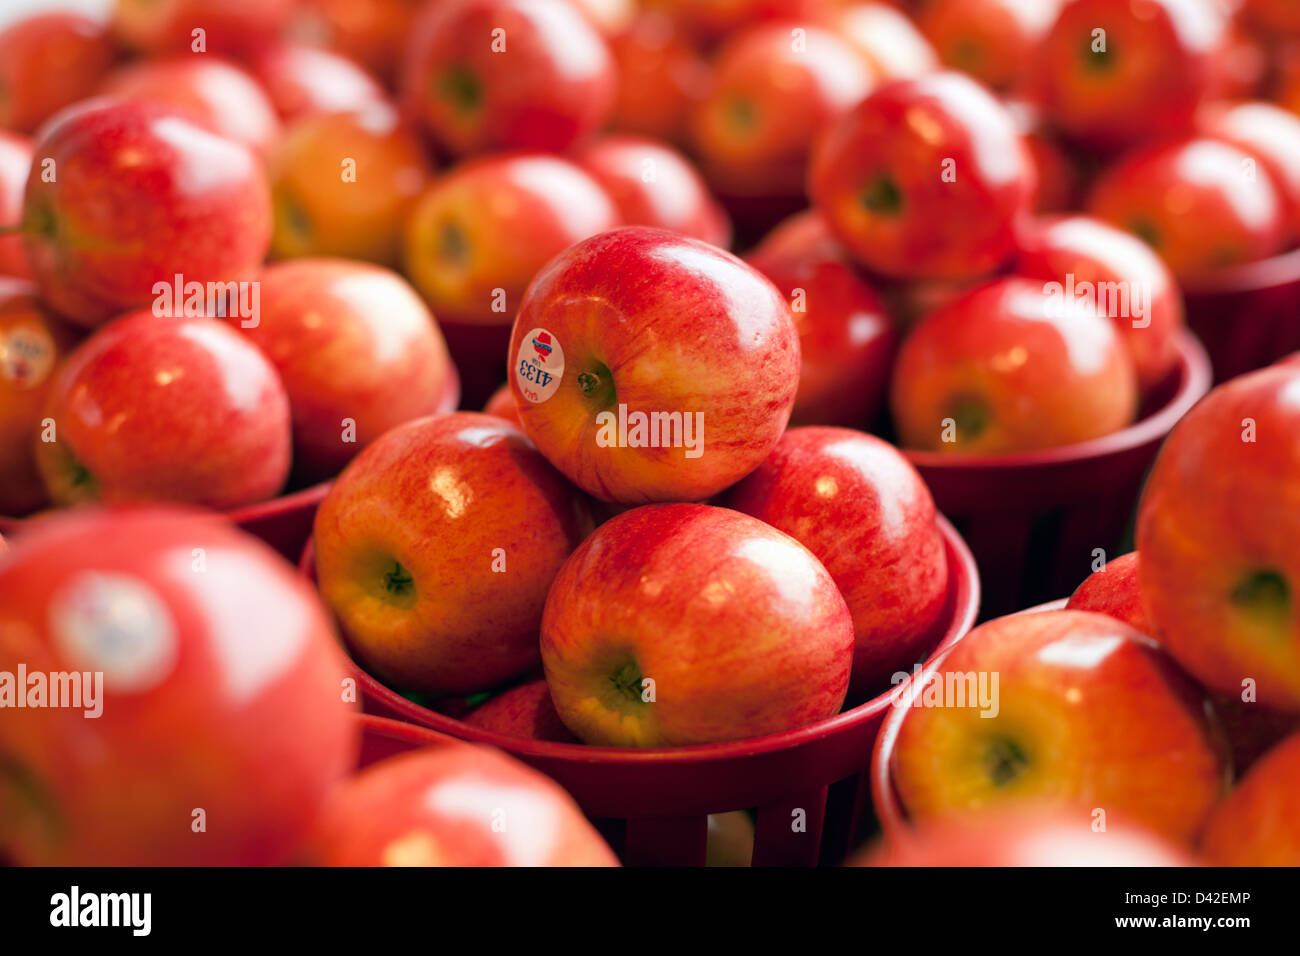 apples on display at a farmers market - Stock Image